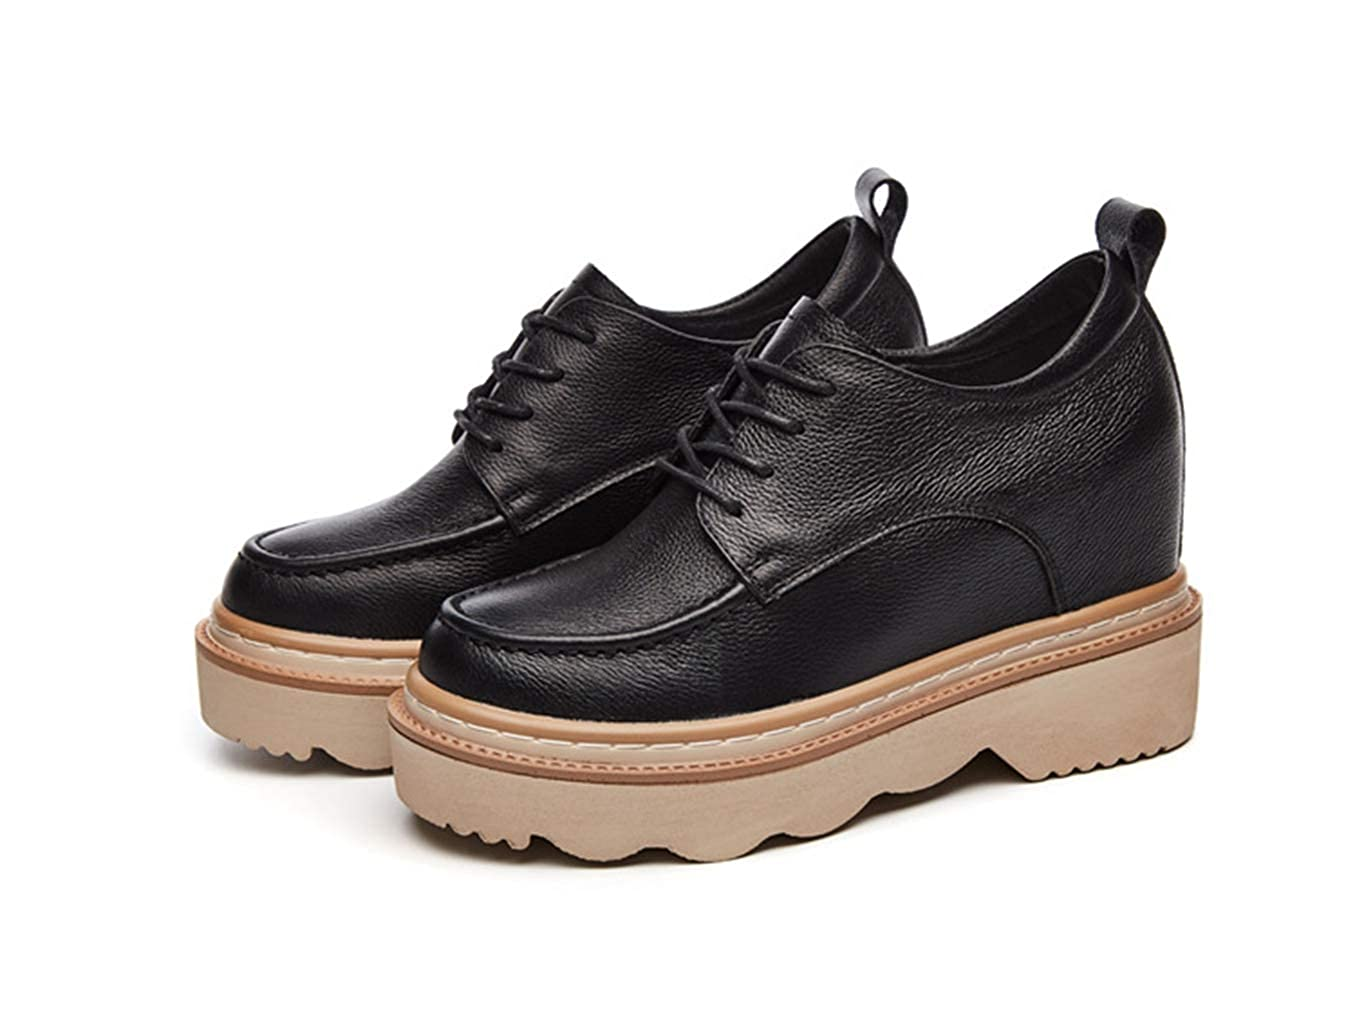 Black T-JULY Woman Autumn Genuine Leather Leisure shoes Female Casual Platform White Wedge Sneakres